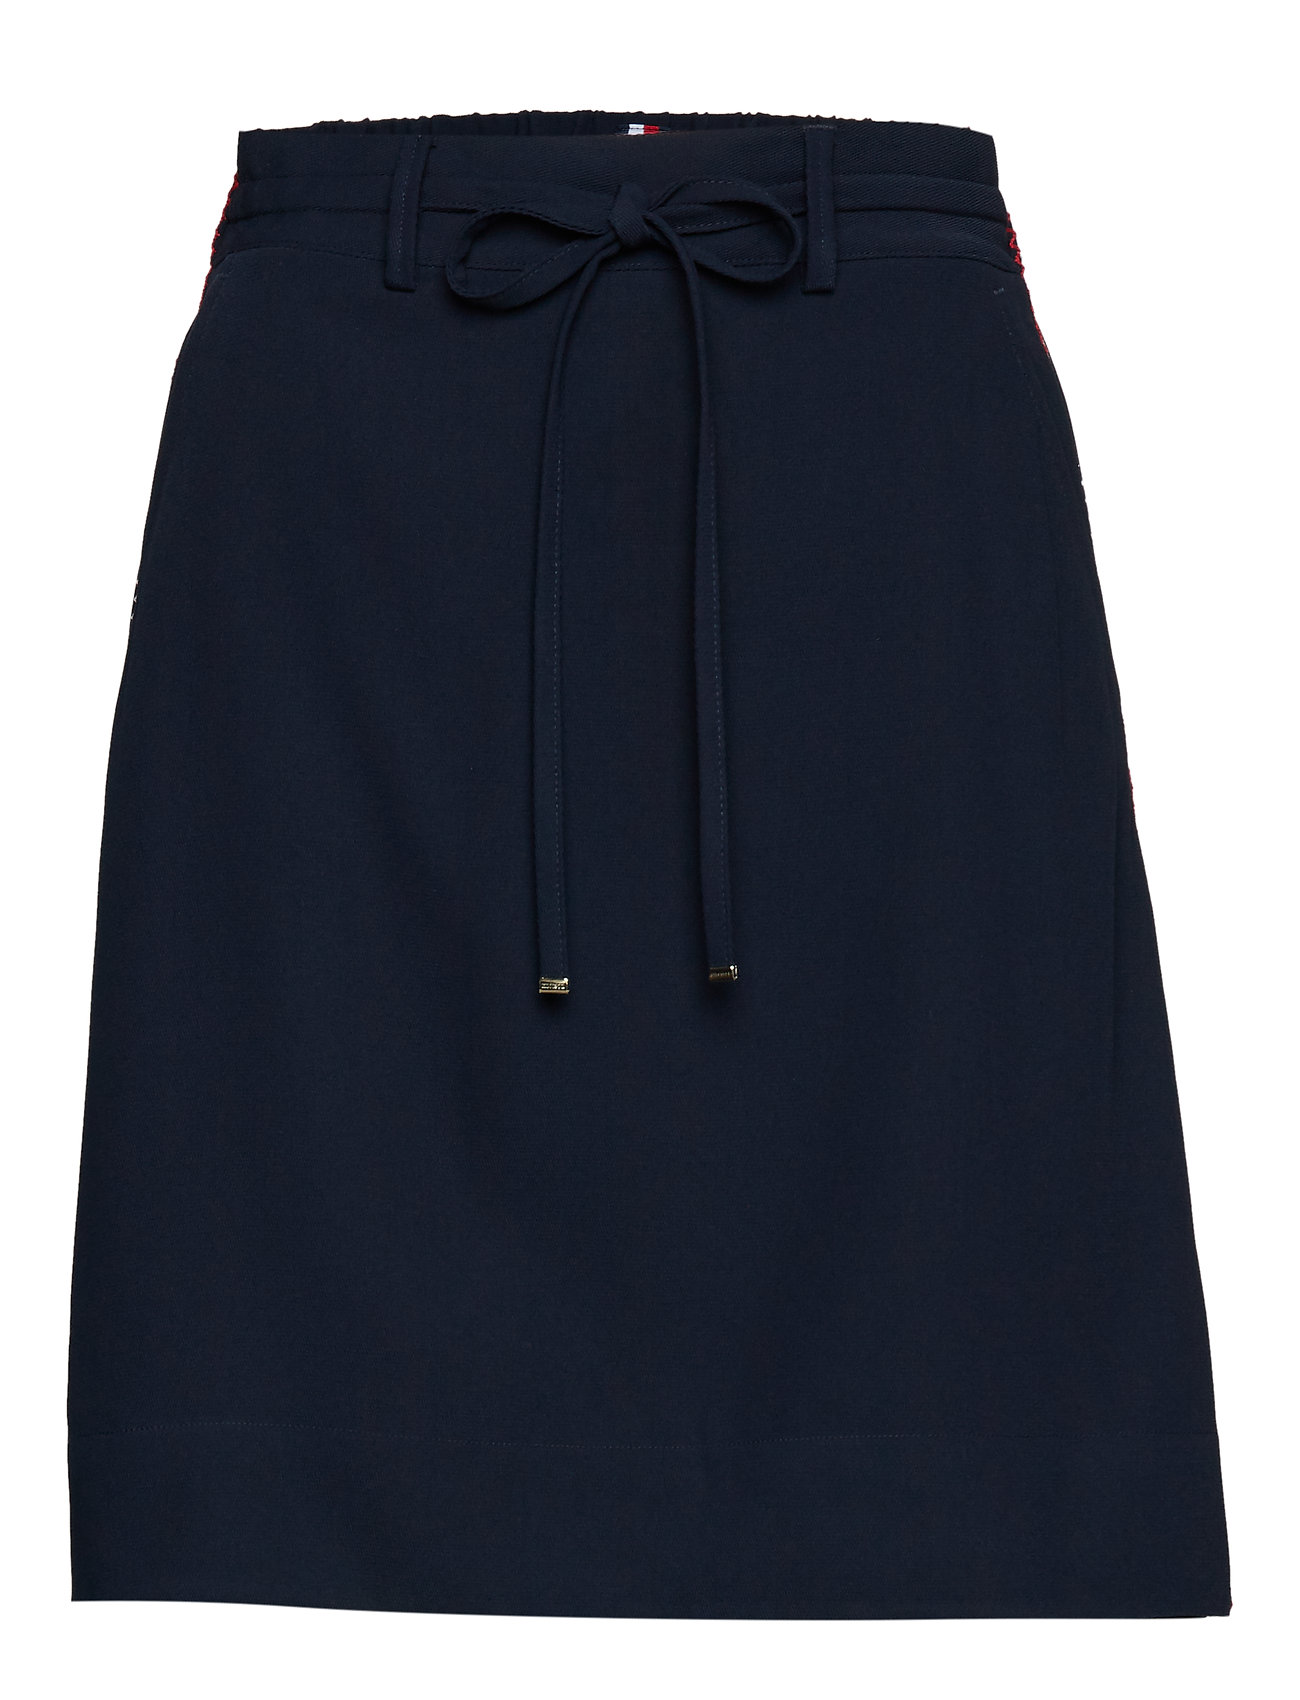 Tommy Hilfiger PALOMA SKIRT - SKY CAPTAIN